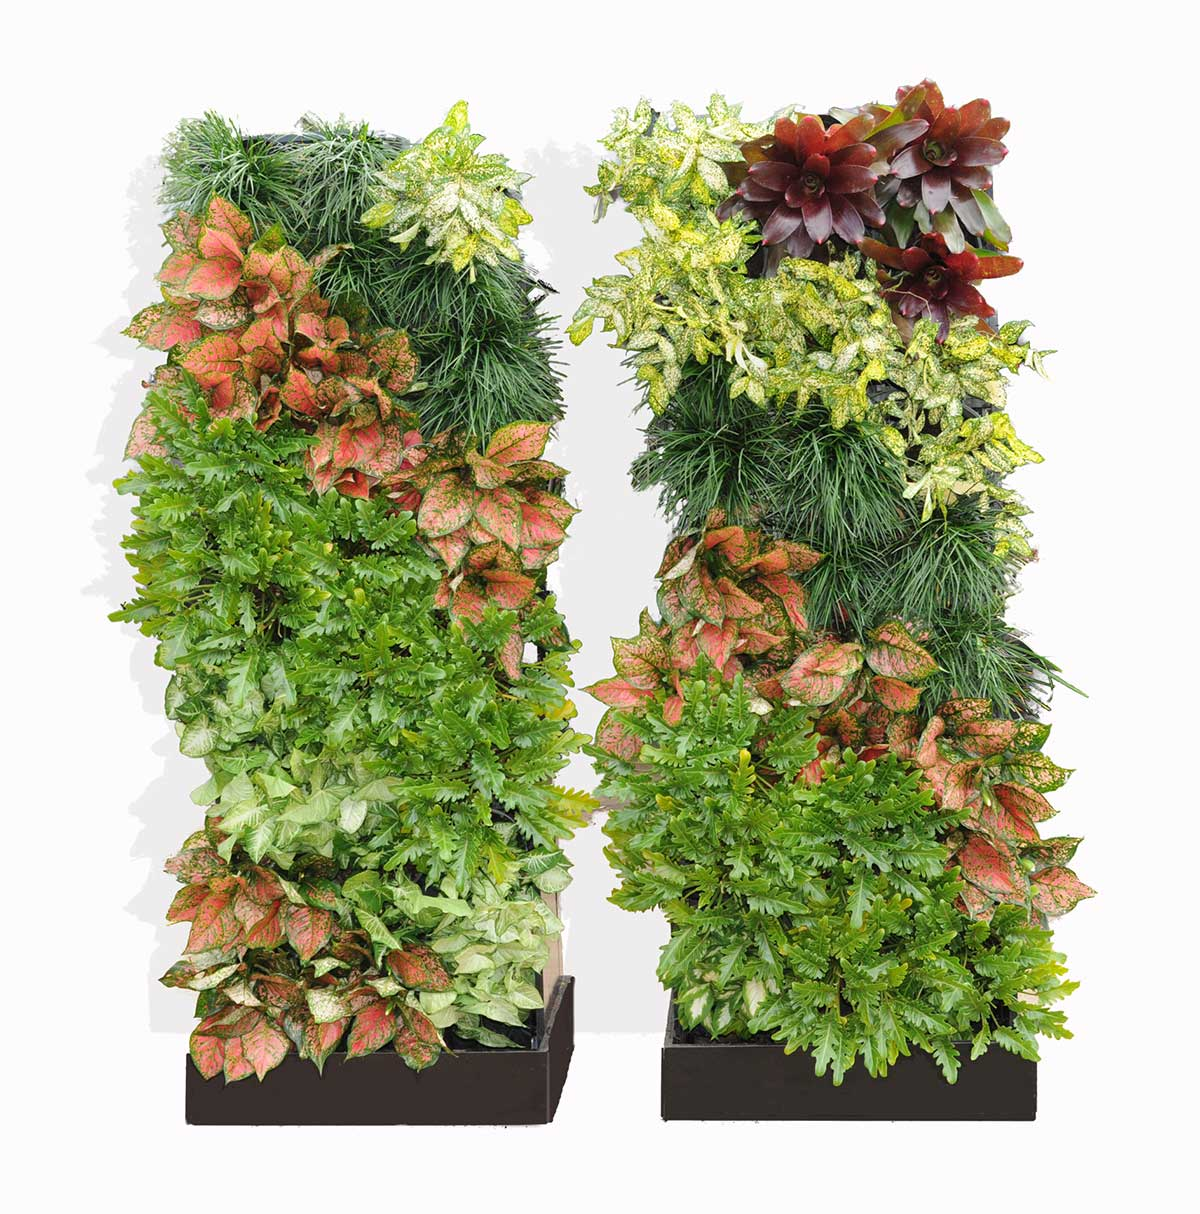 Twin portable vertical gardens